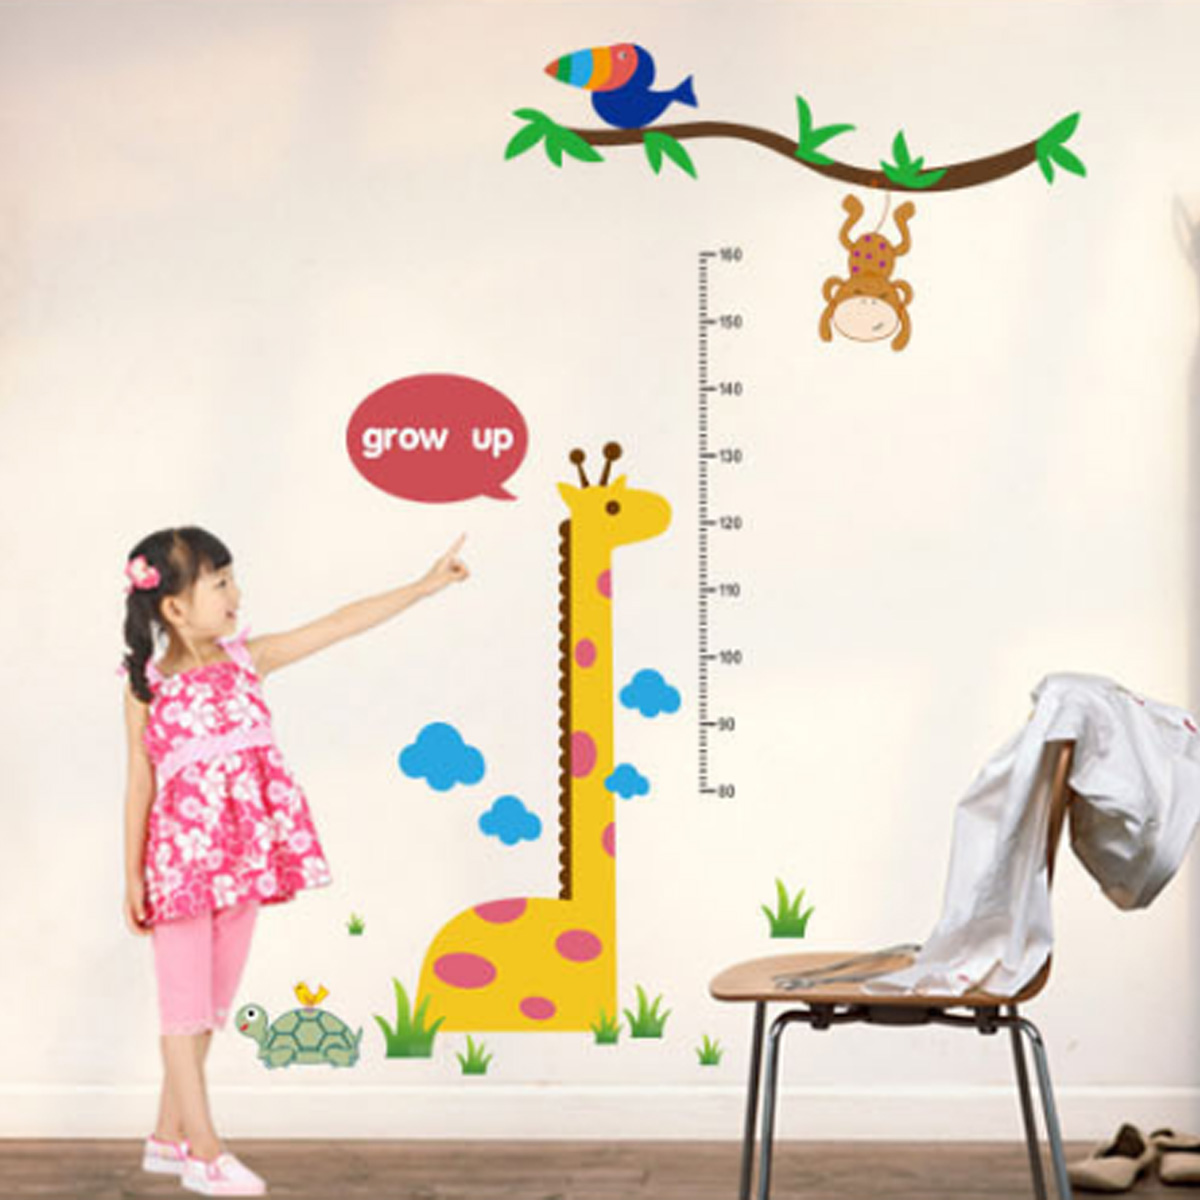 new height chart kid growth measure home room nursery wall sticker new height chart kid growth measure home room